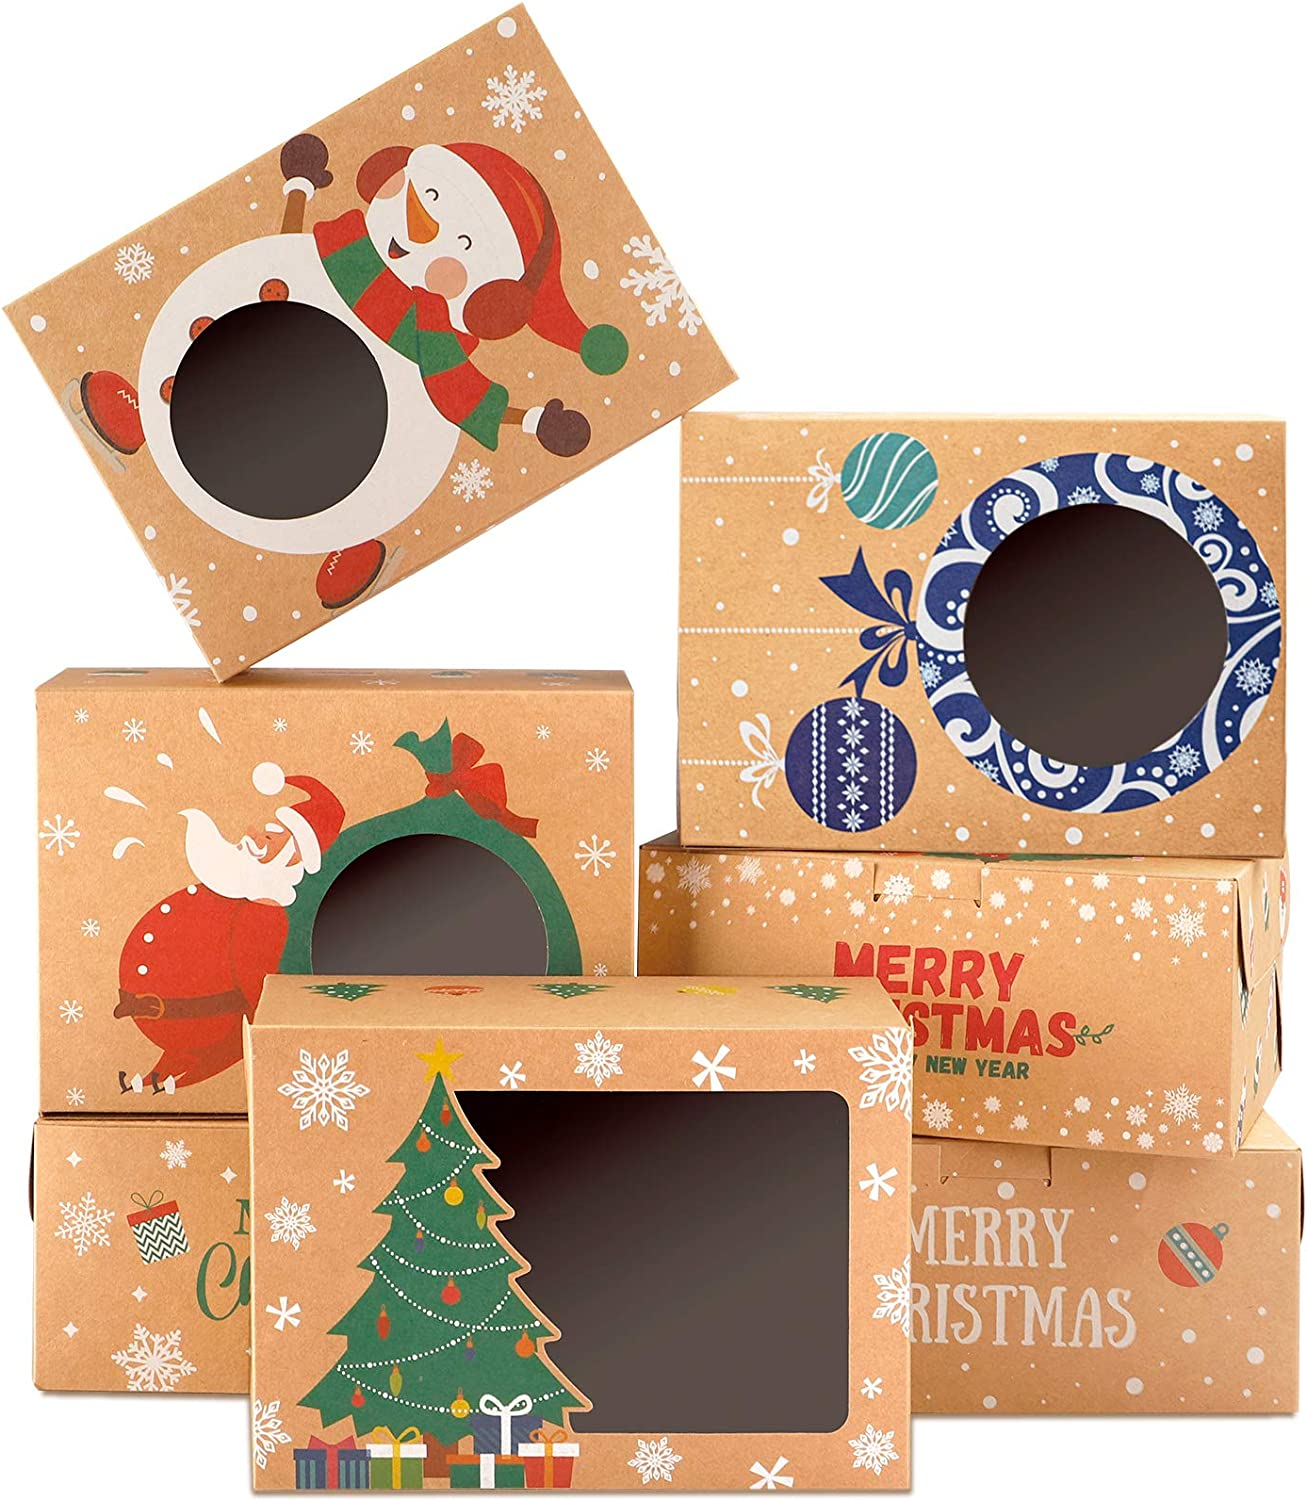 TOMNK 18 Pieces Christmas Cookie Boxes Kraft Baking Box with Window for Cupcakes, Candy, Holiday Bakery Treat and Party Favor 8.3 x 5.9 x 3.7 Inches